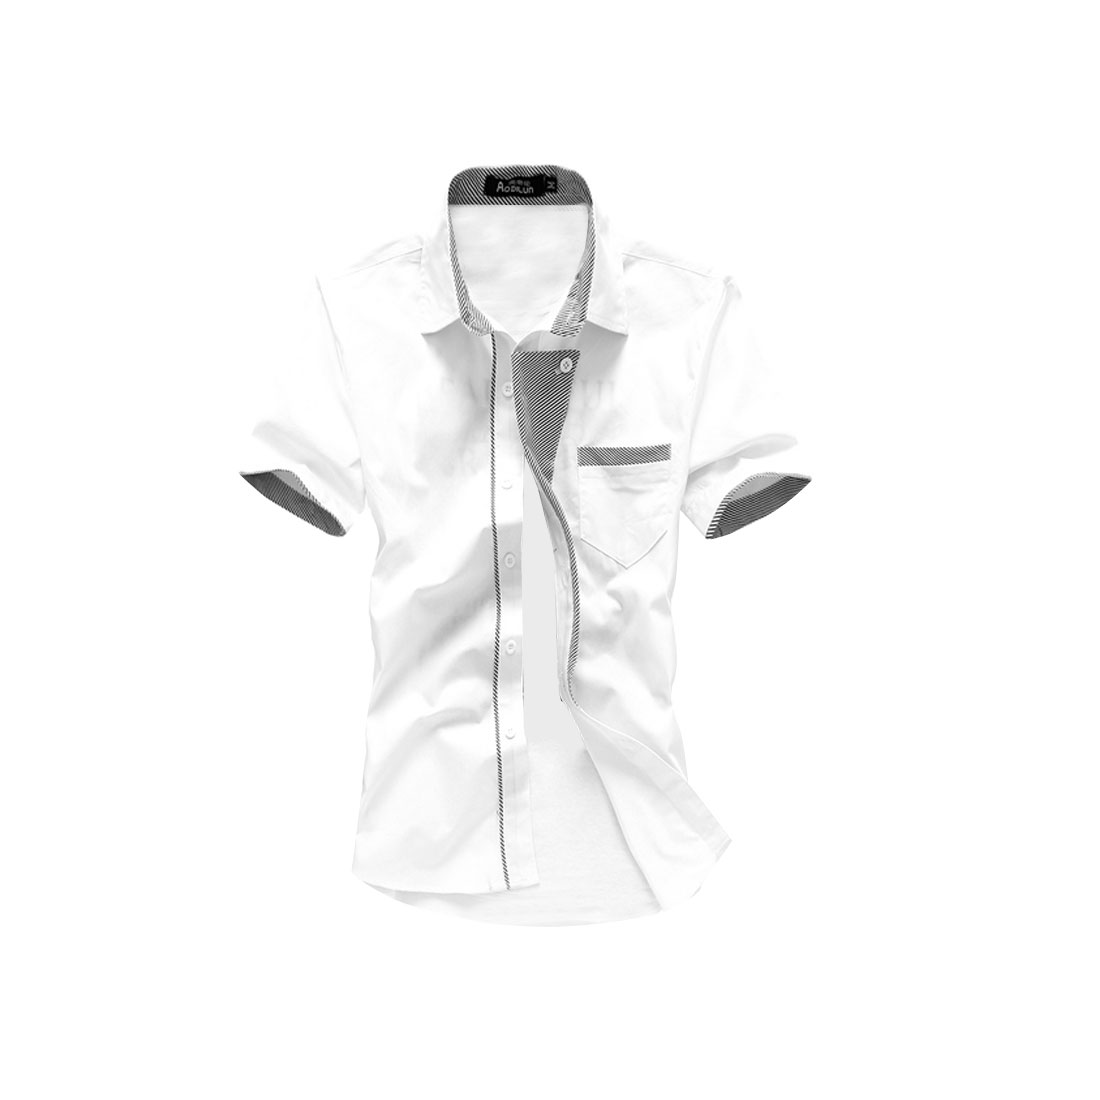 Men Button Down Short Sleeve Chest Pocket Shirt White M